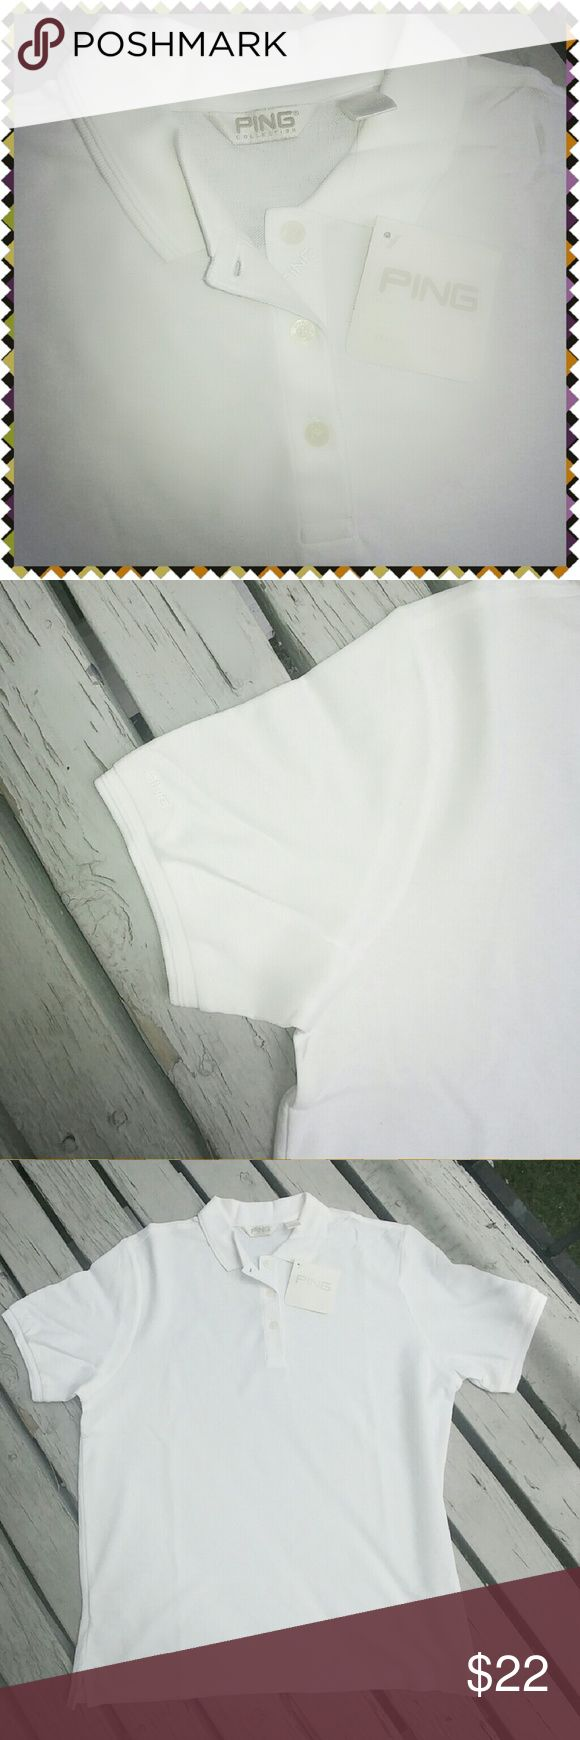 White PING Golf Polo shirt White PING Golf Polo shirt 100% Pima Cotton  Made in Peru  Runs 1 size small.  Great gift for ⛳ hubby or just for his Saturdays. Ping Shirts Polos